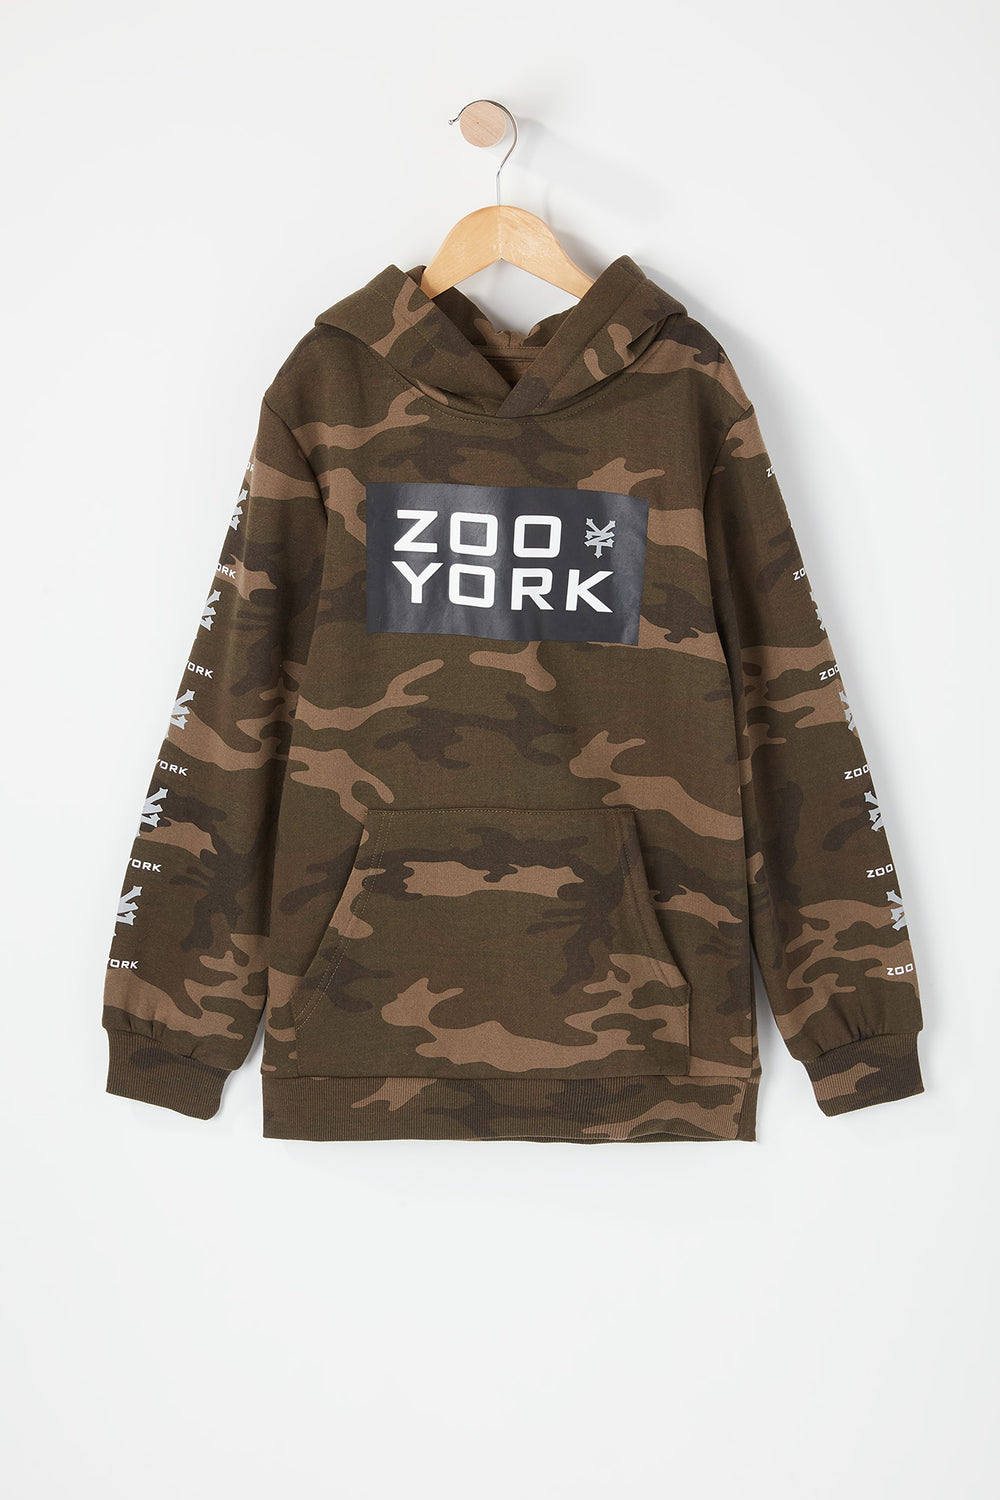 Haut À Capuchon Camouflage Zoo York Junior Camoufle